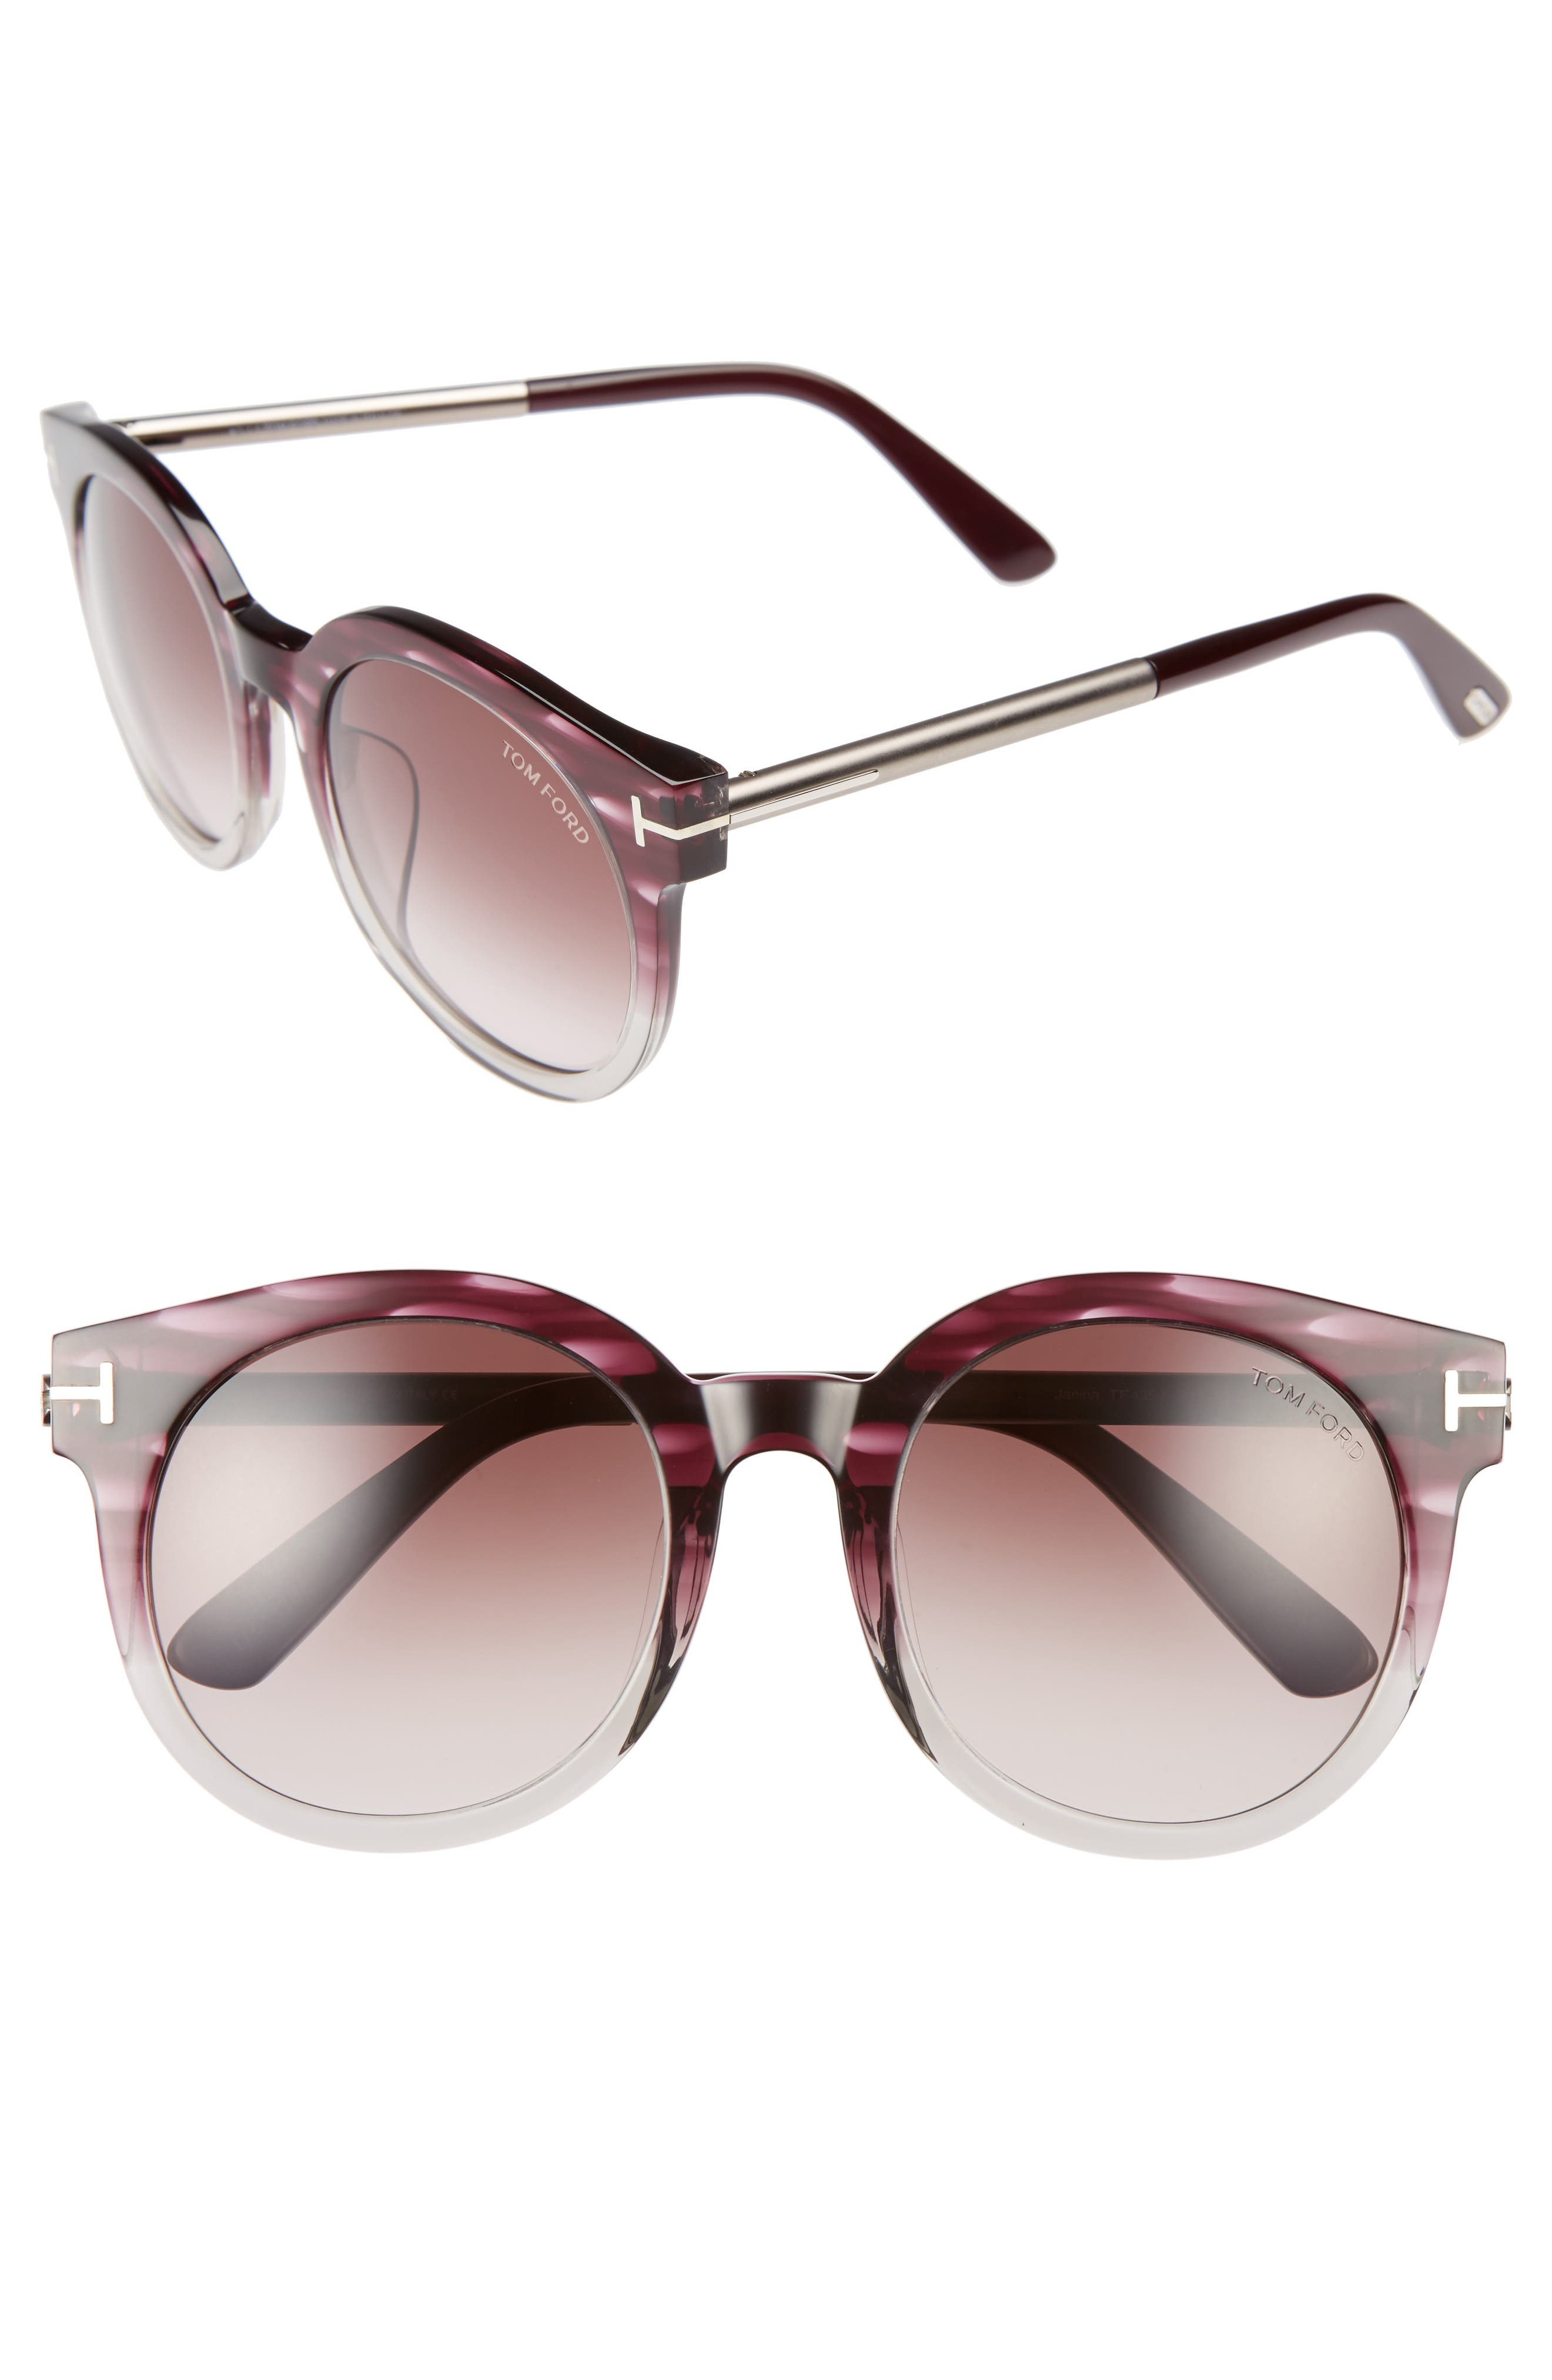 Main Image - Tom Ford Janina 53mm Special Fit Round Sunglasses